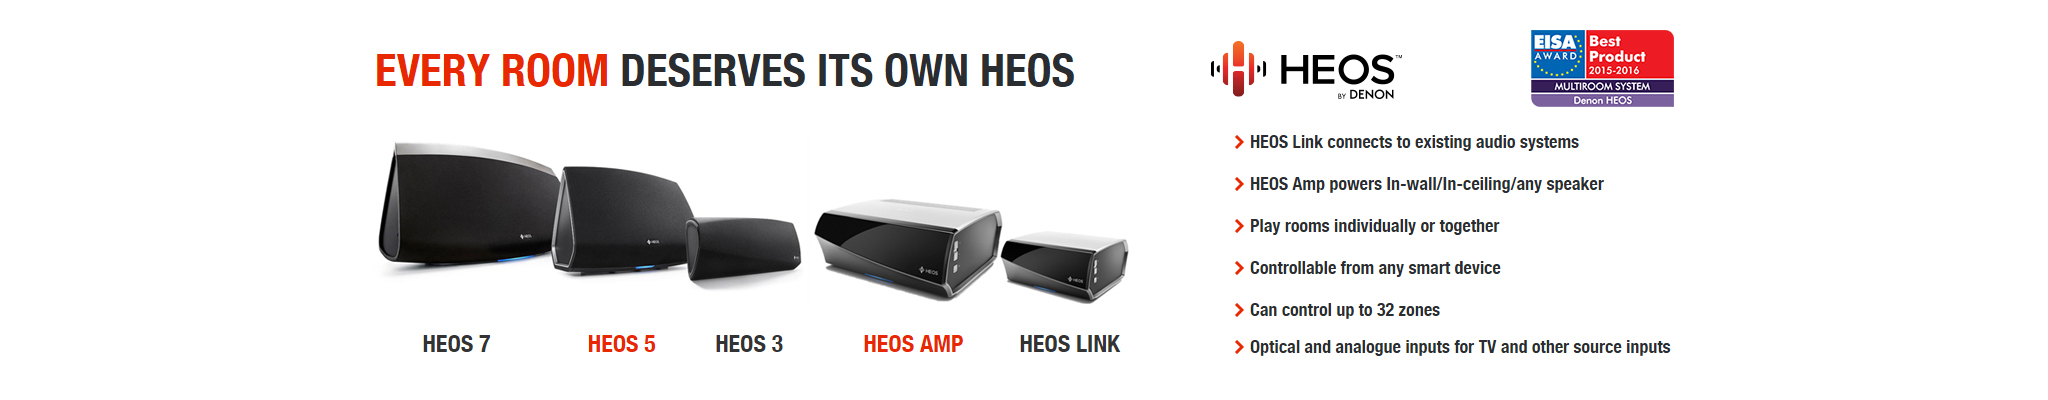 Every Room Deserves a HEOS | HEOS by Denon | Wireless Multi-Room Speaker System EISA